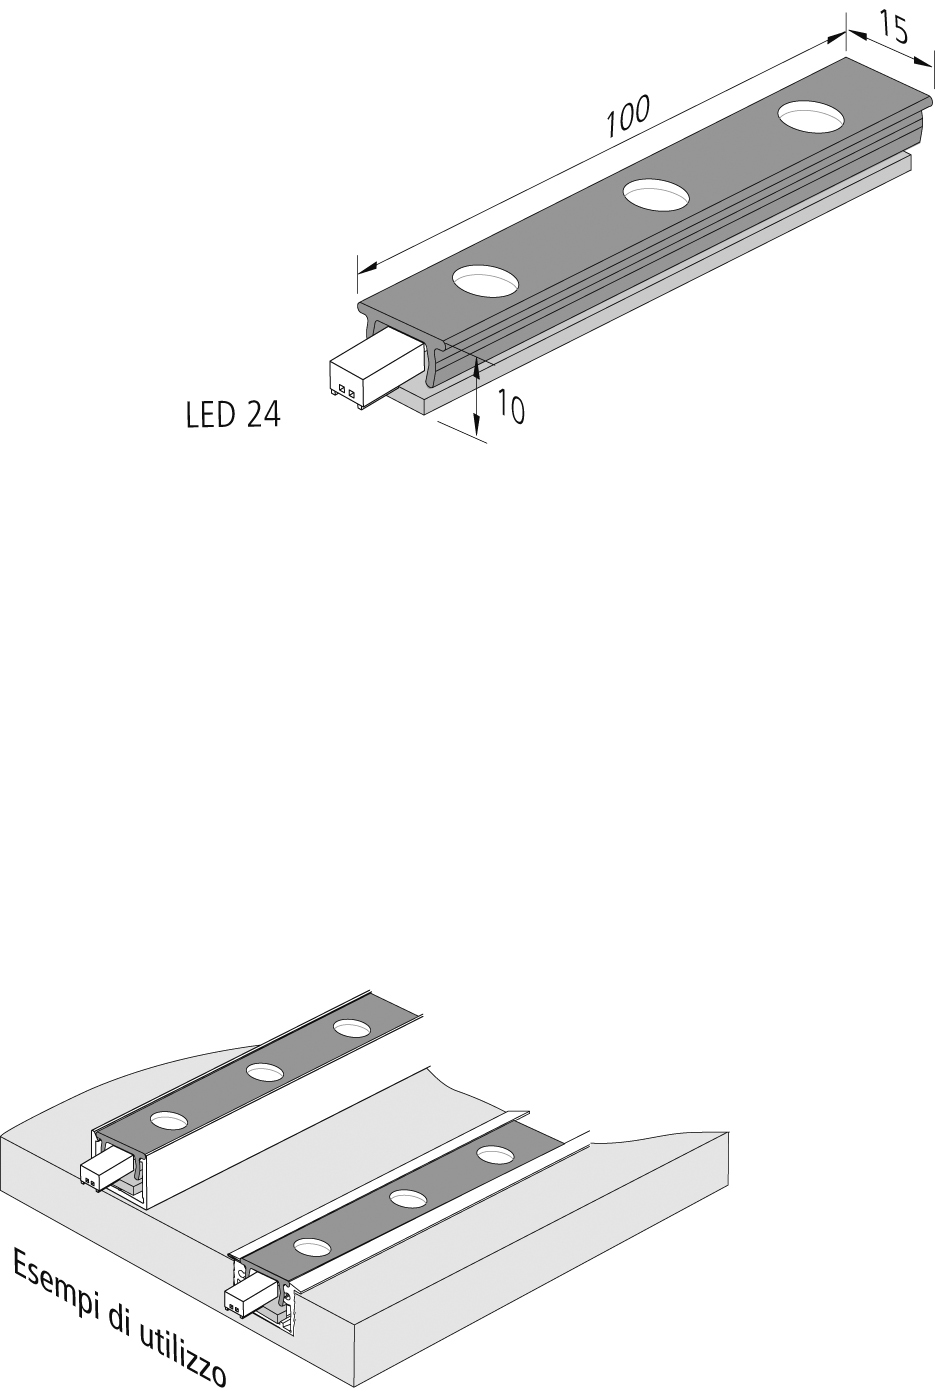 Anteprima: LED-2-Link-Pixel_it